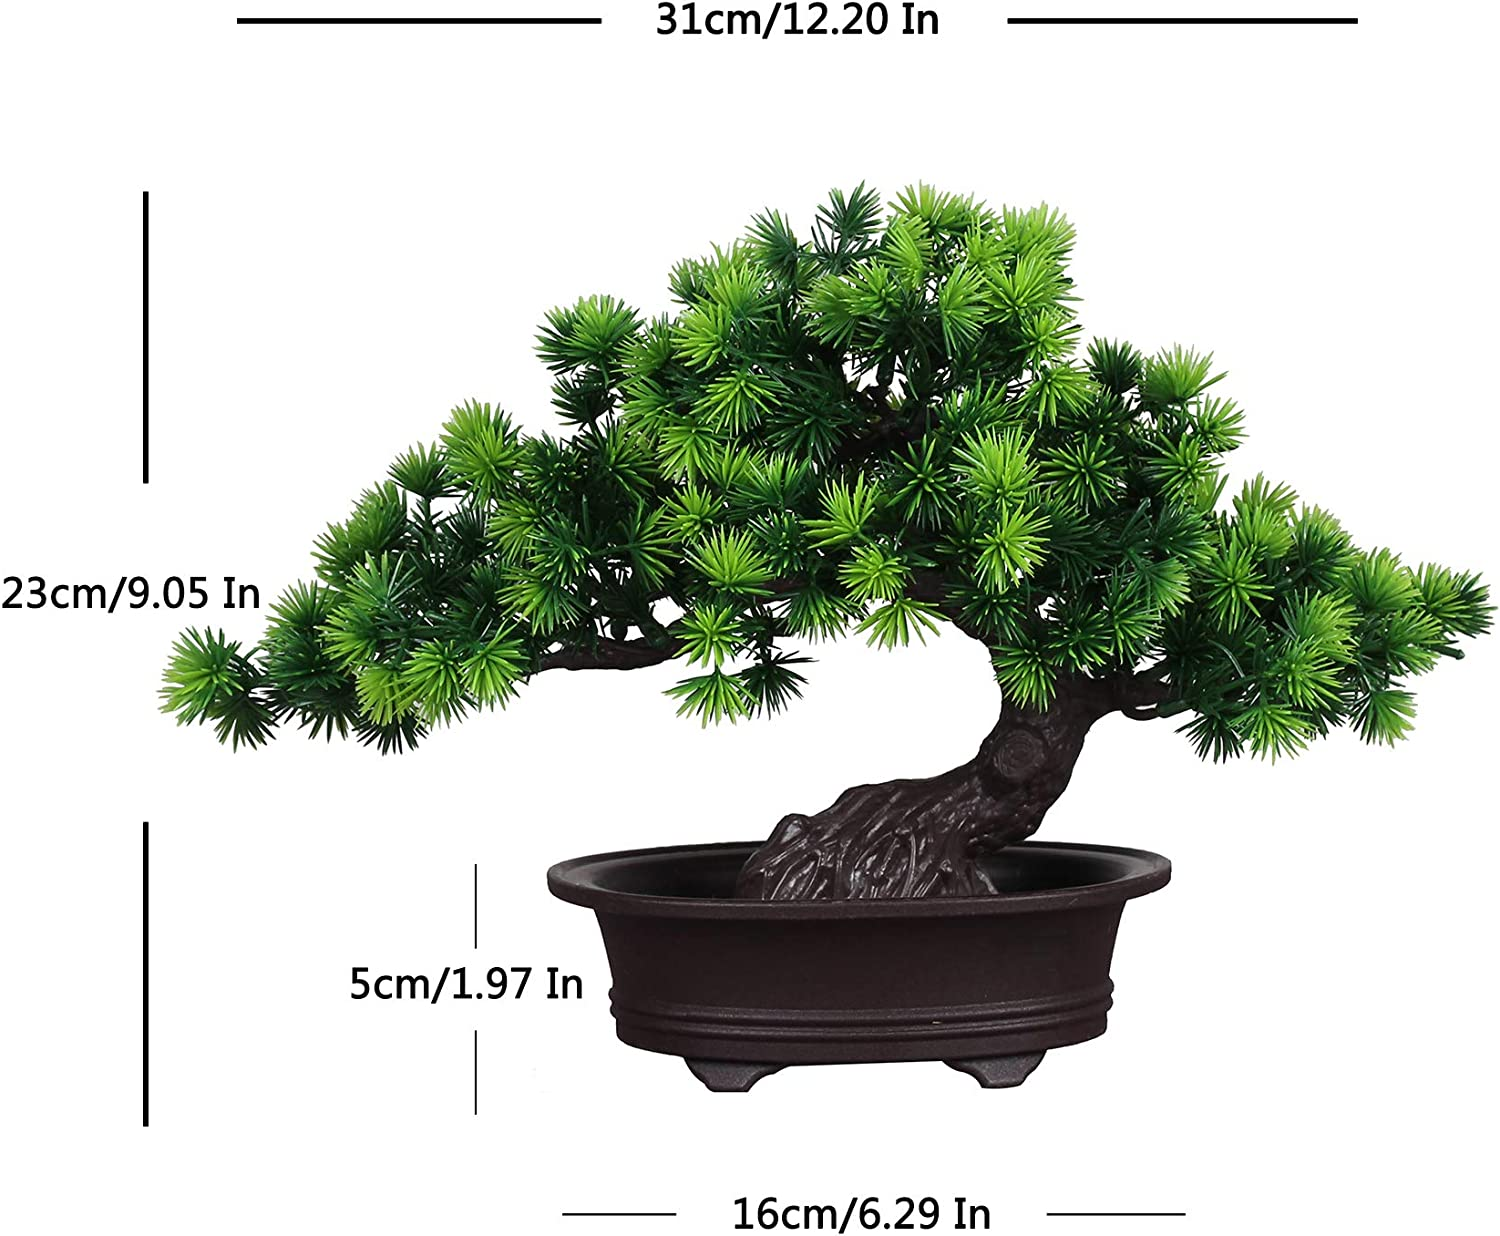 Artificial Bonsai Cedar Artificial Plant Bonsai Replica Artificial Bonsai Trees Plastic Bonsai Decor Bonsai Decoration For Office And Home 17 Amazon Co Uk Kitchen Home